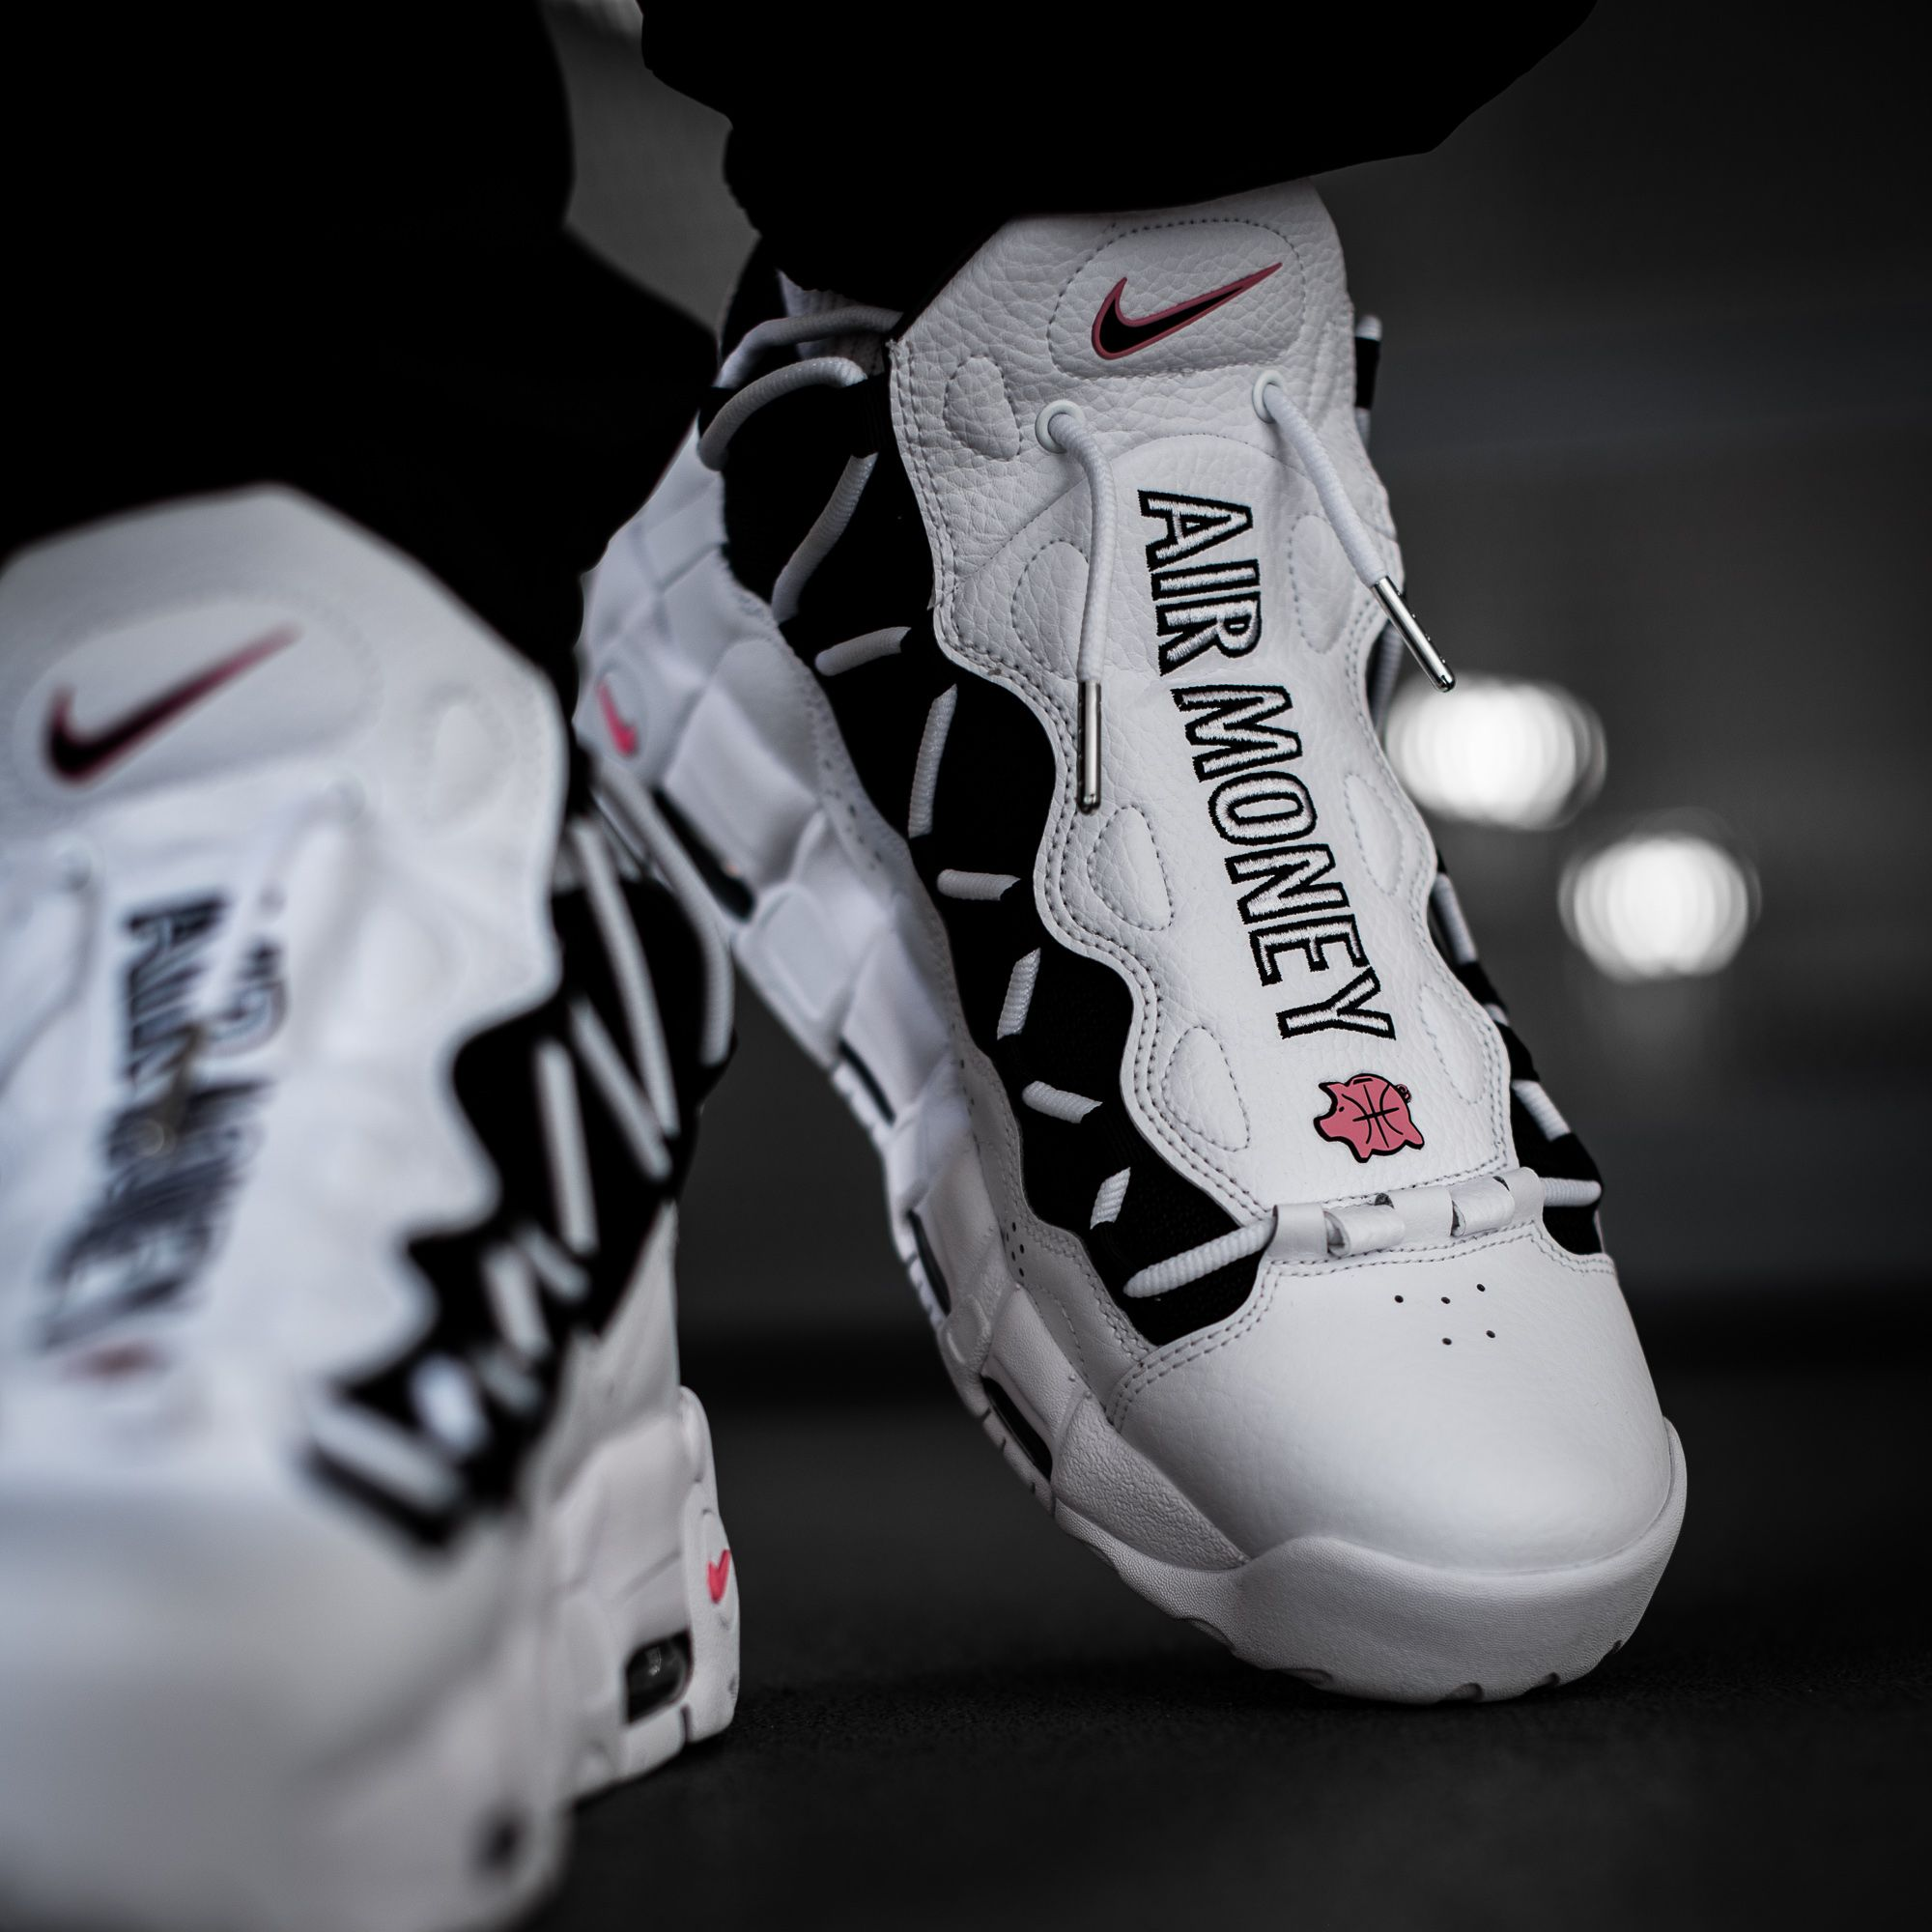 a0e7fd40e48a9a The Nike Air More Money silhouette is back in a premium white leather and a  coral piggy bank logo